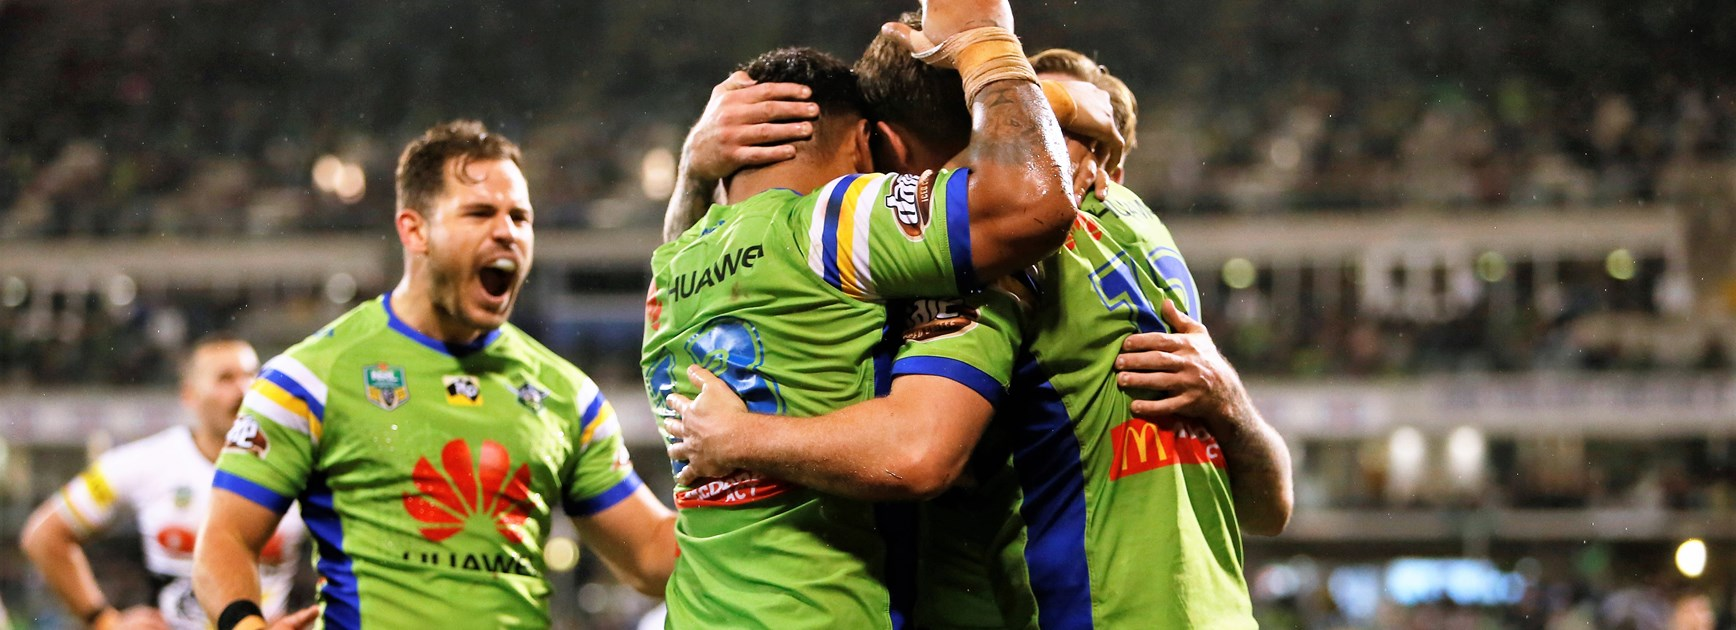 The Canberra Raiders.